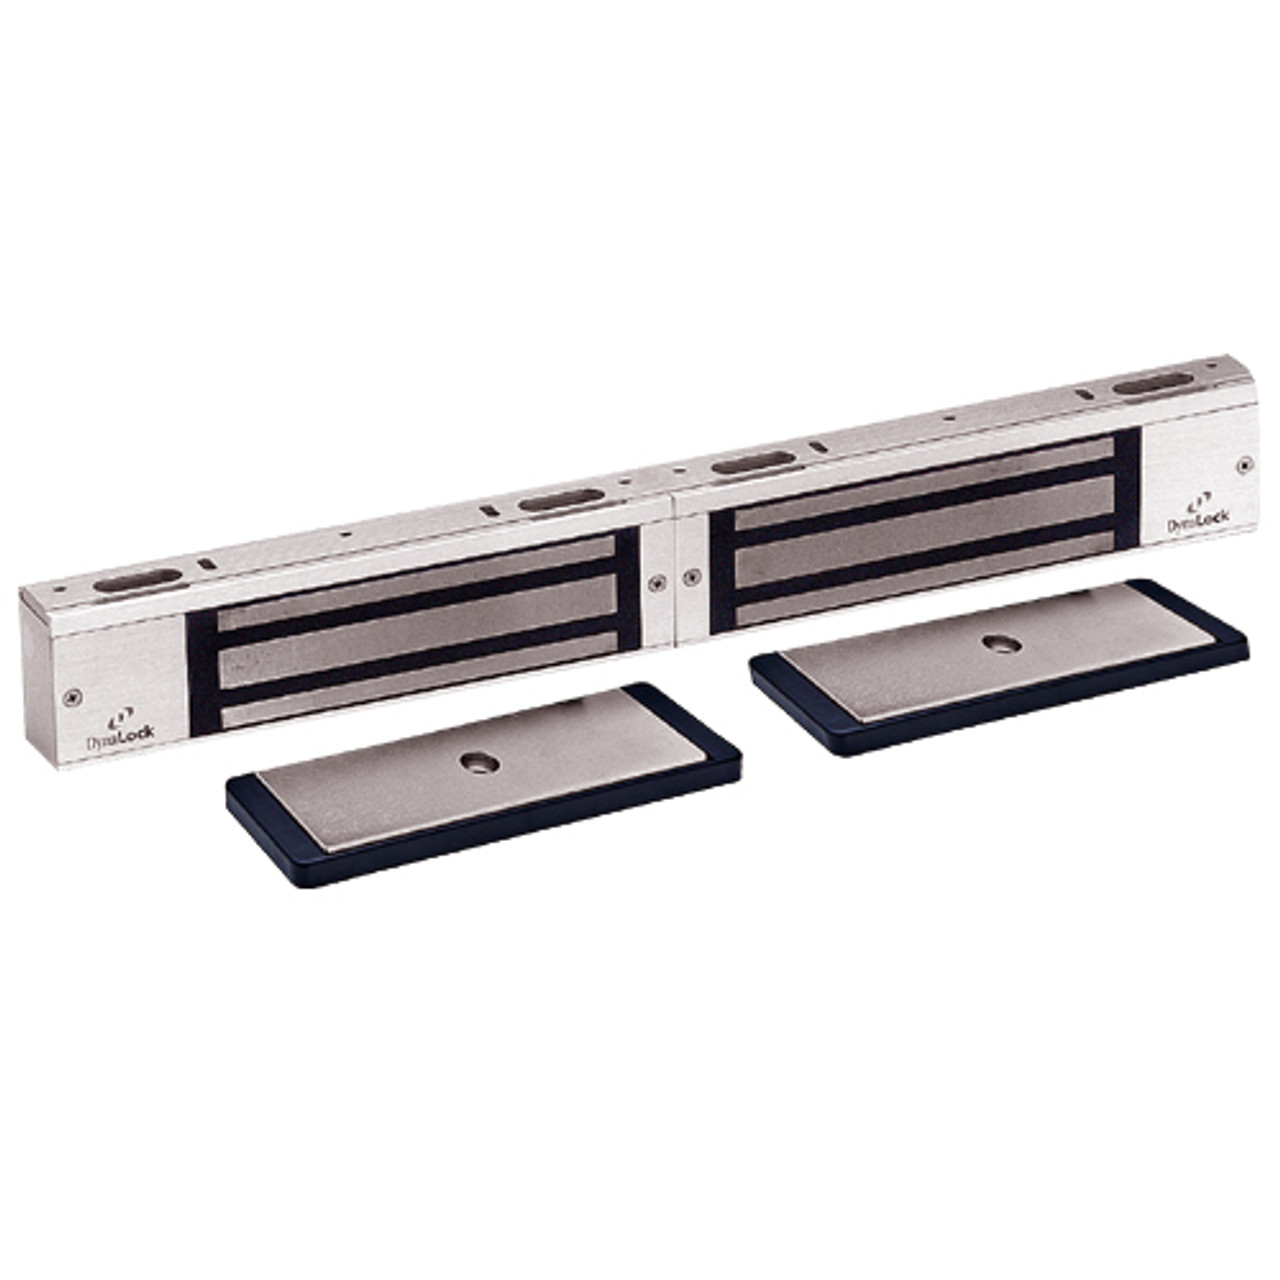 3002-US28 DynaLock 3000 Series 1500 LBs Double Electromagnetic Lock for Outswing Door in Satin Aluminum